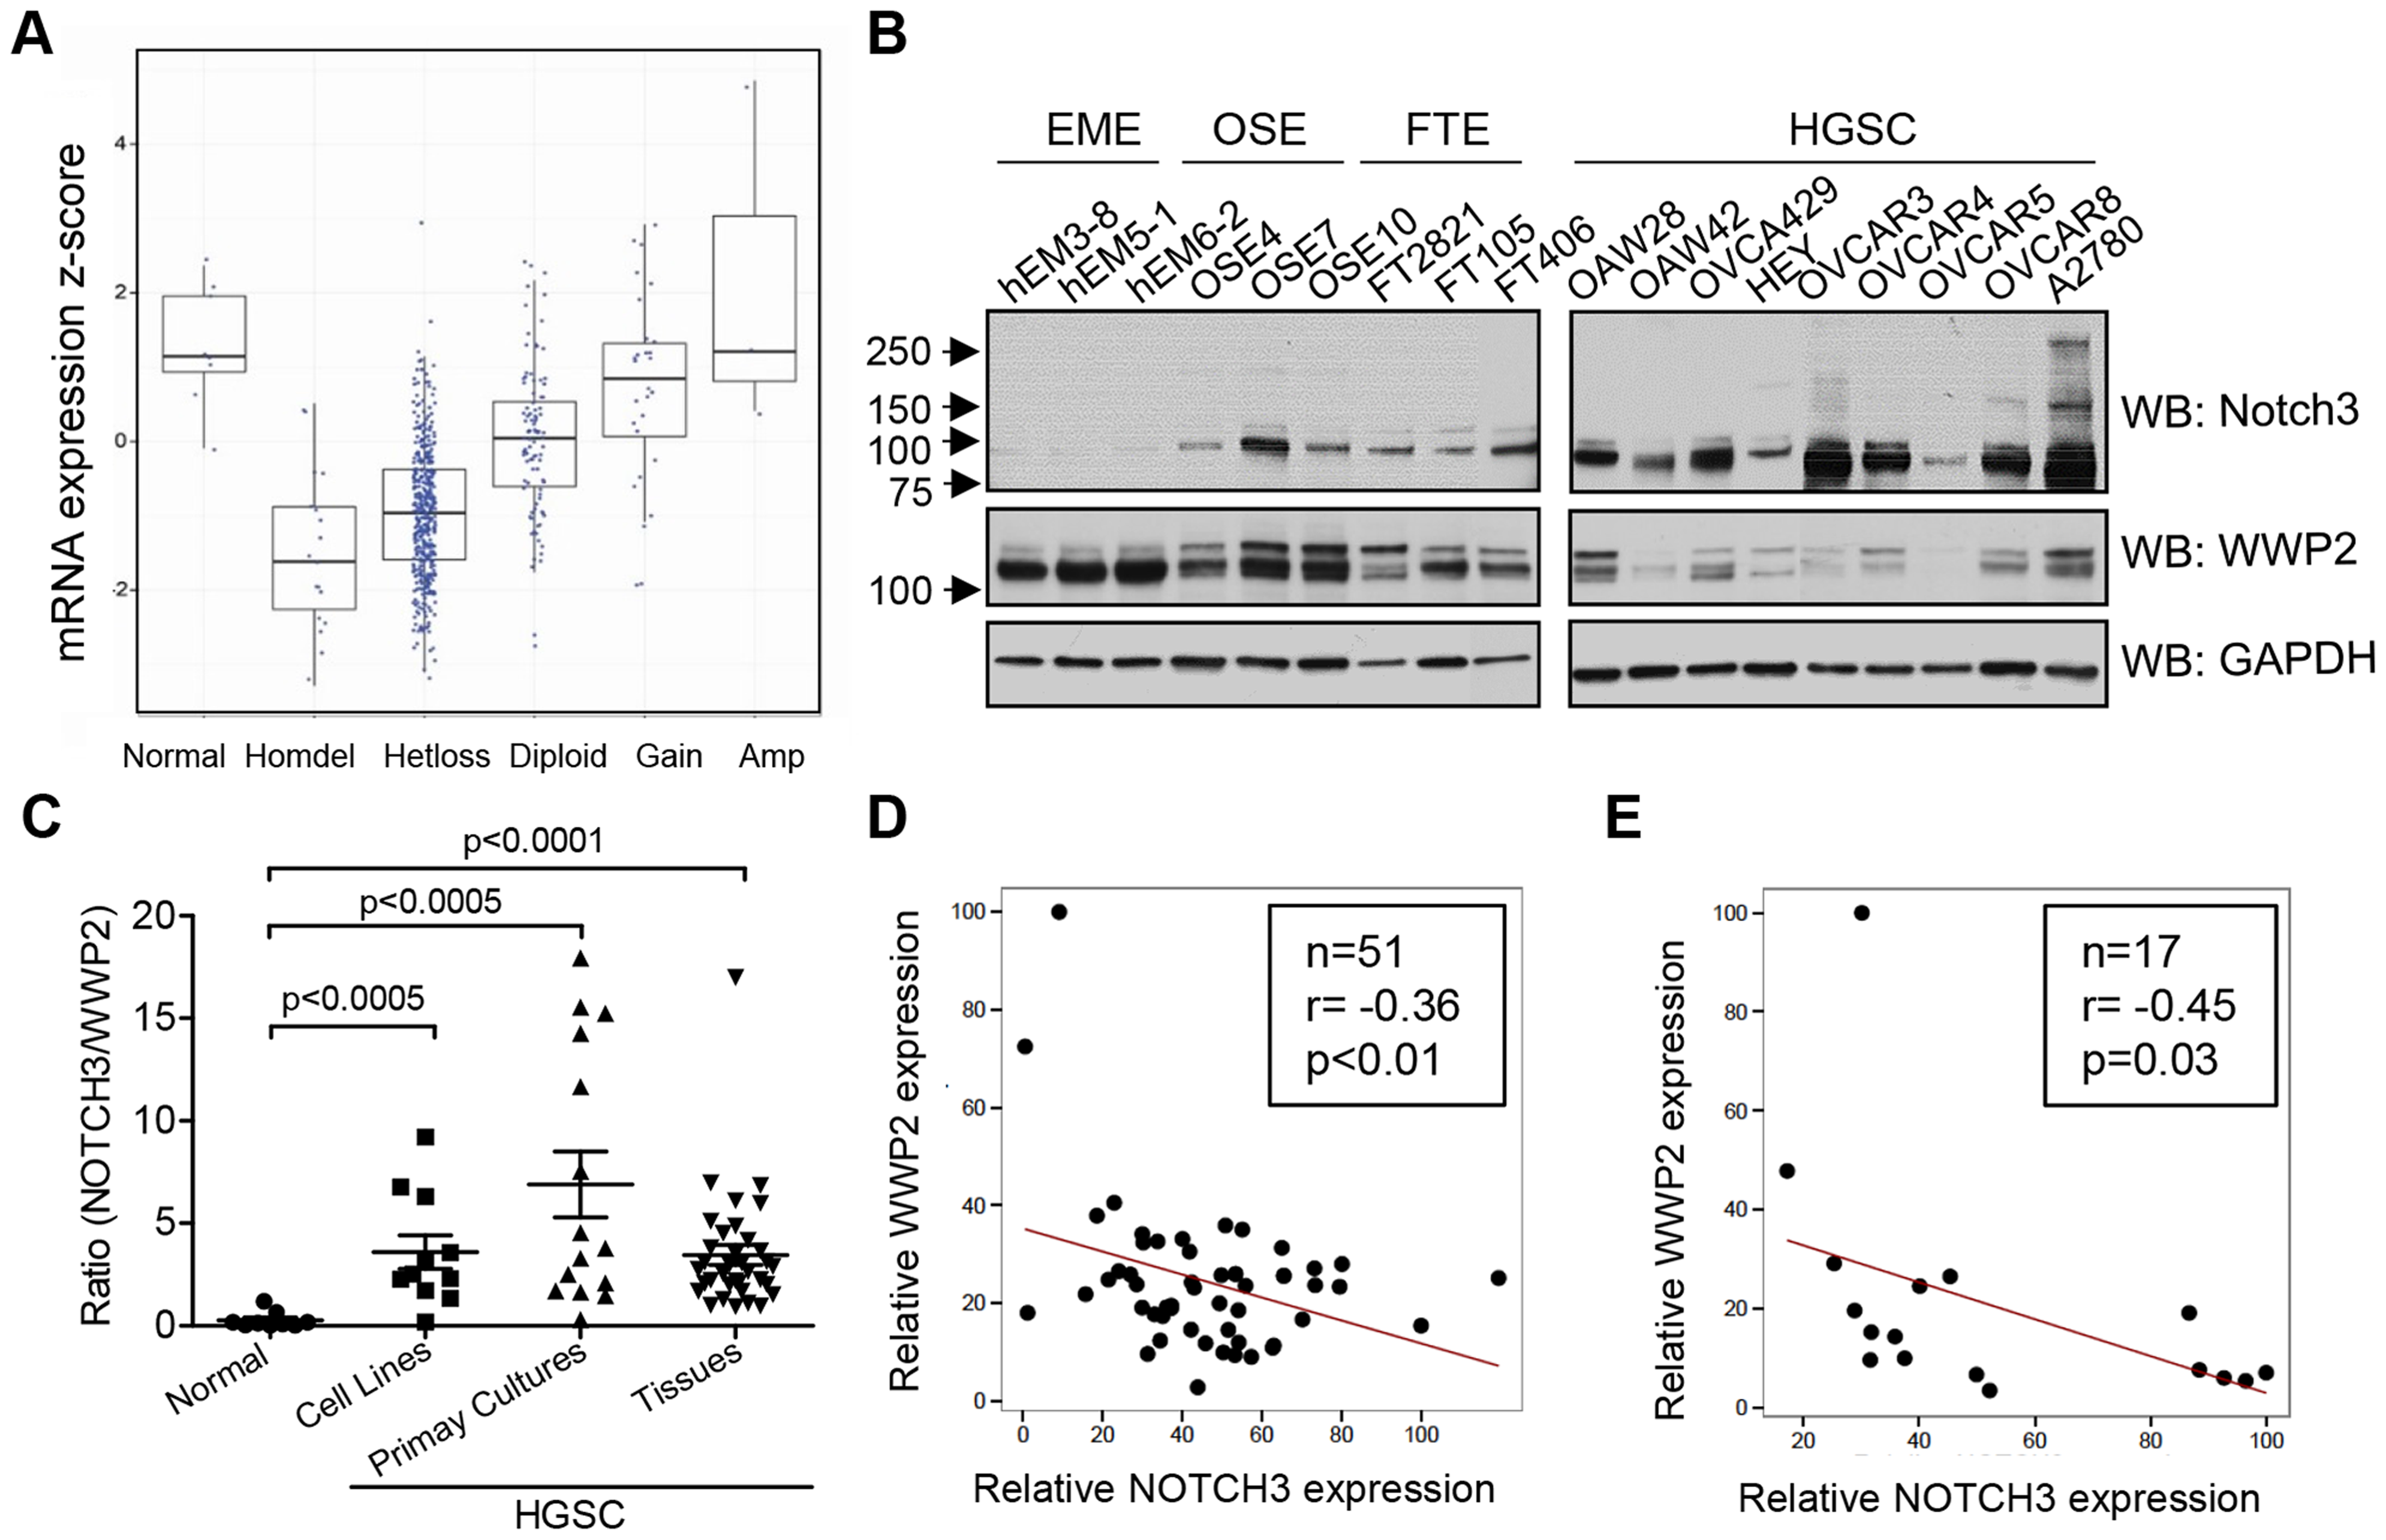 WWP2 is down-regulated in ovarian carcinomas.